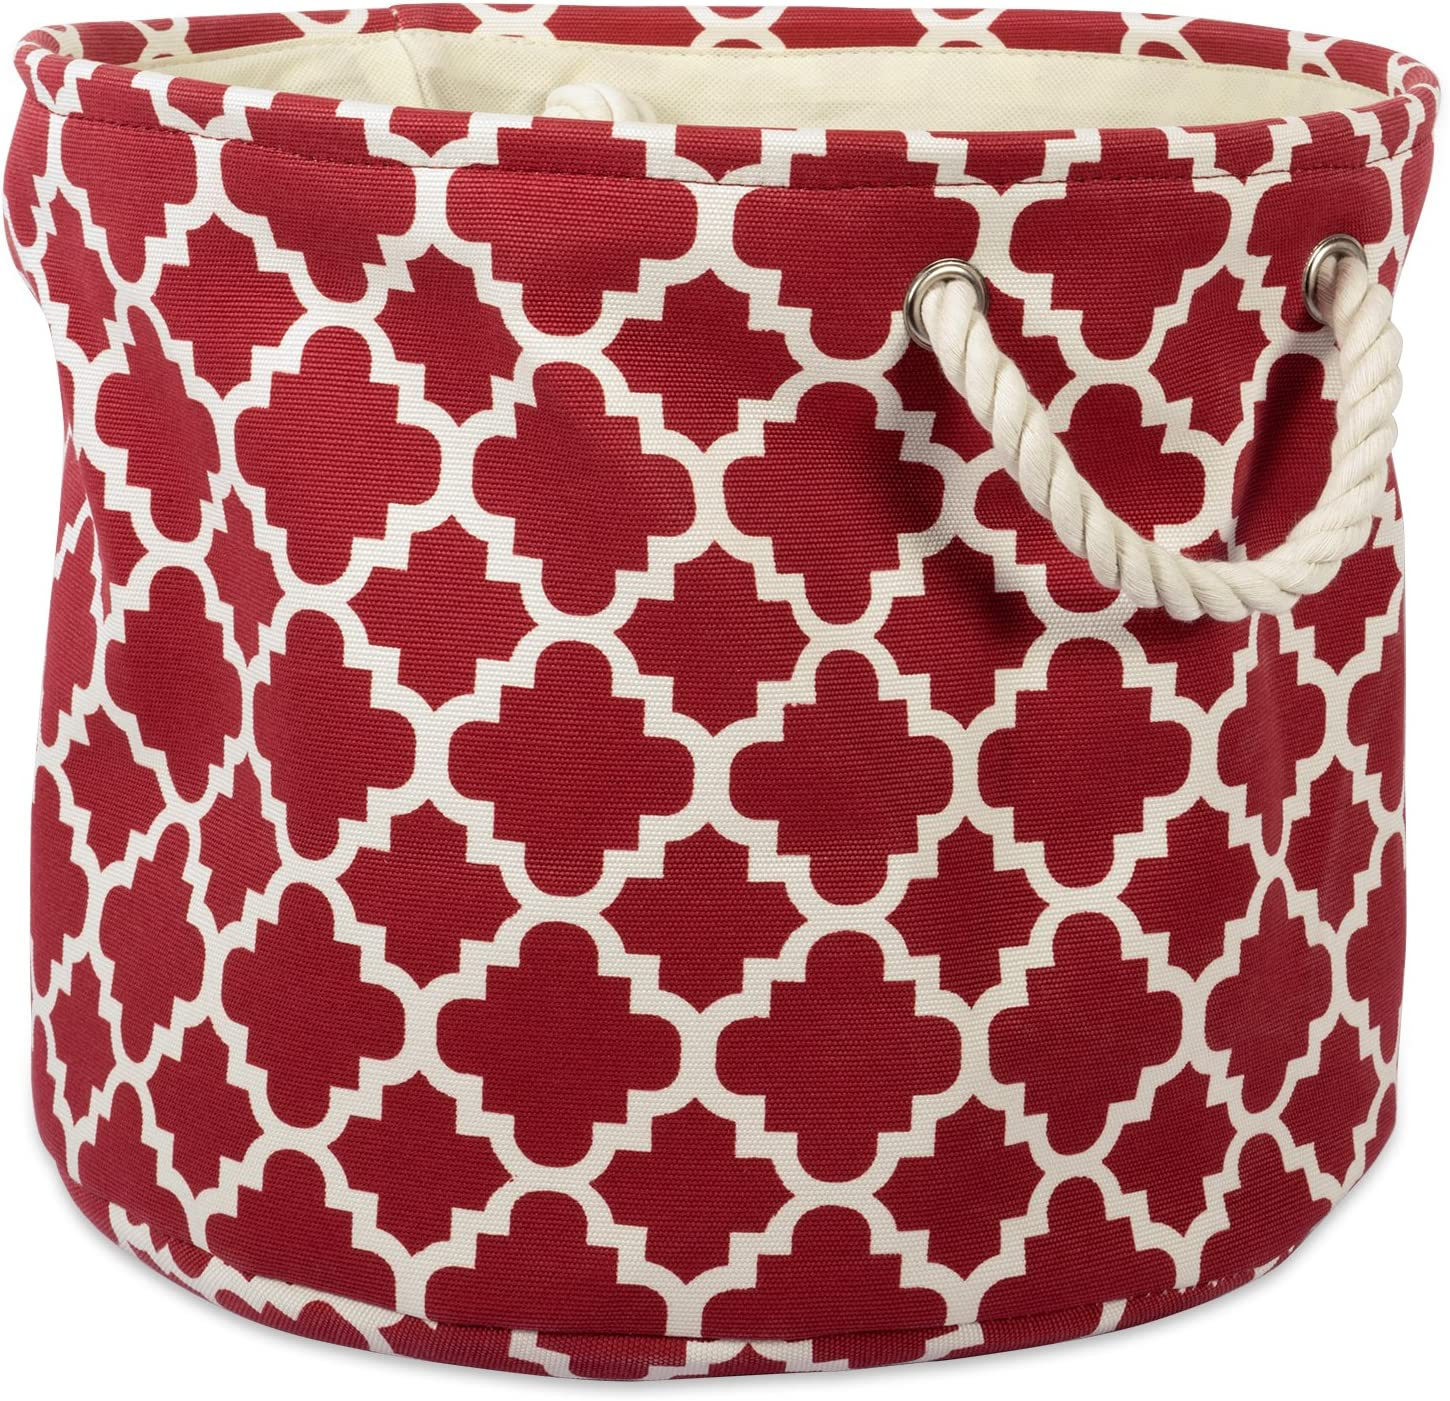 DII CAMZ37889Printed Polyester, Collapsible and Convenient Storage Bin To Organize Office, Bedroom, Closet, Kid's Toys, Laundry  -Medium Round, Rust Lattice